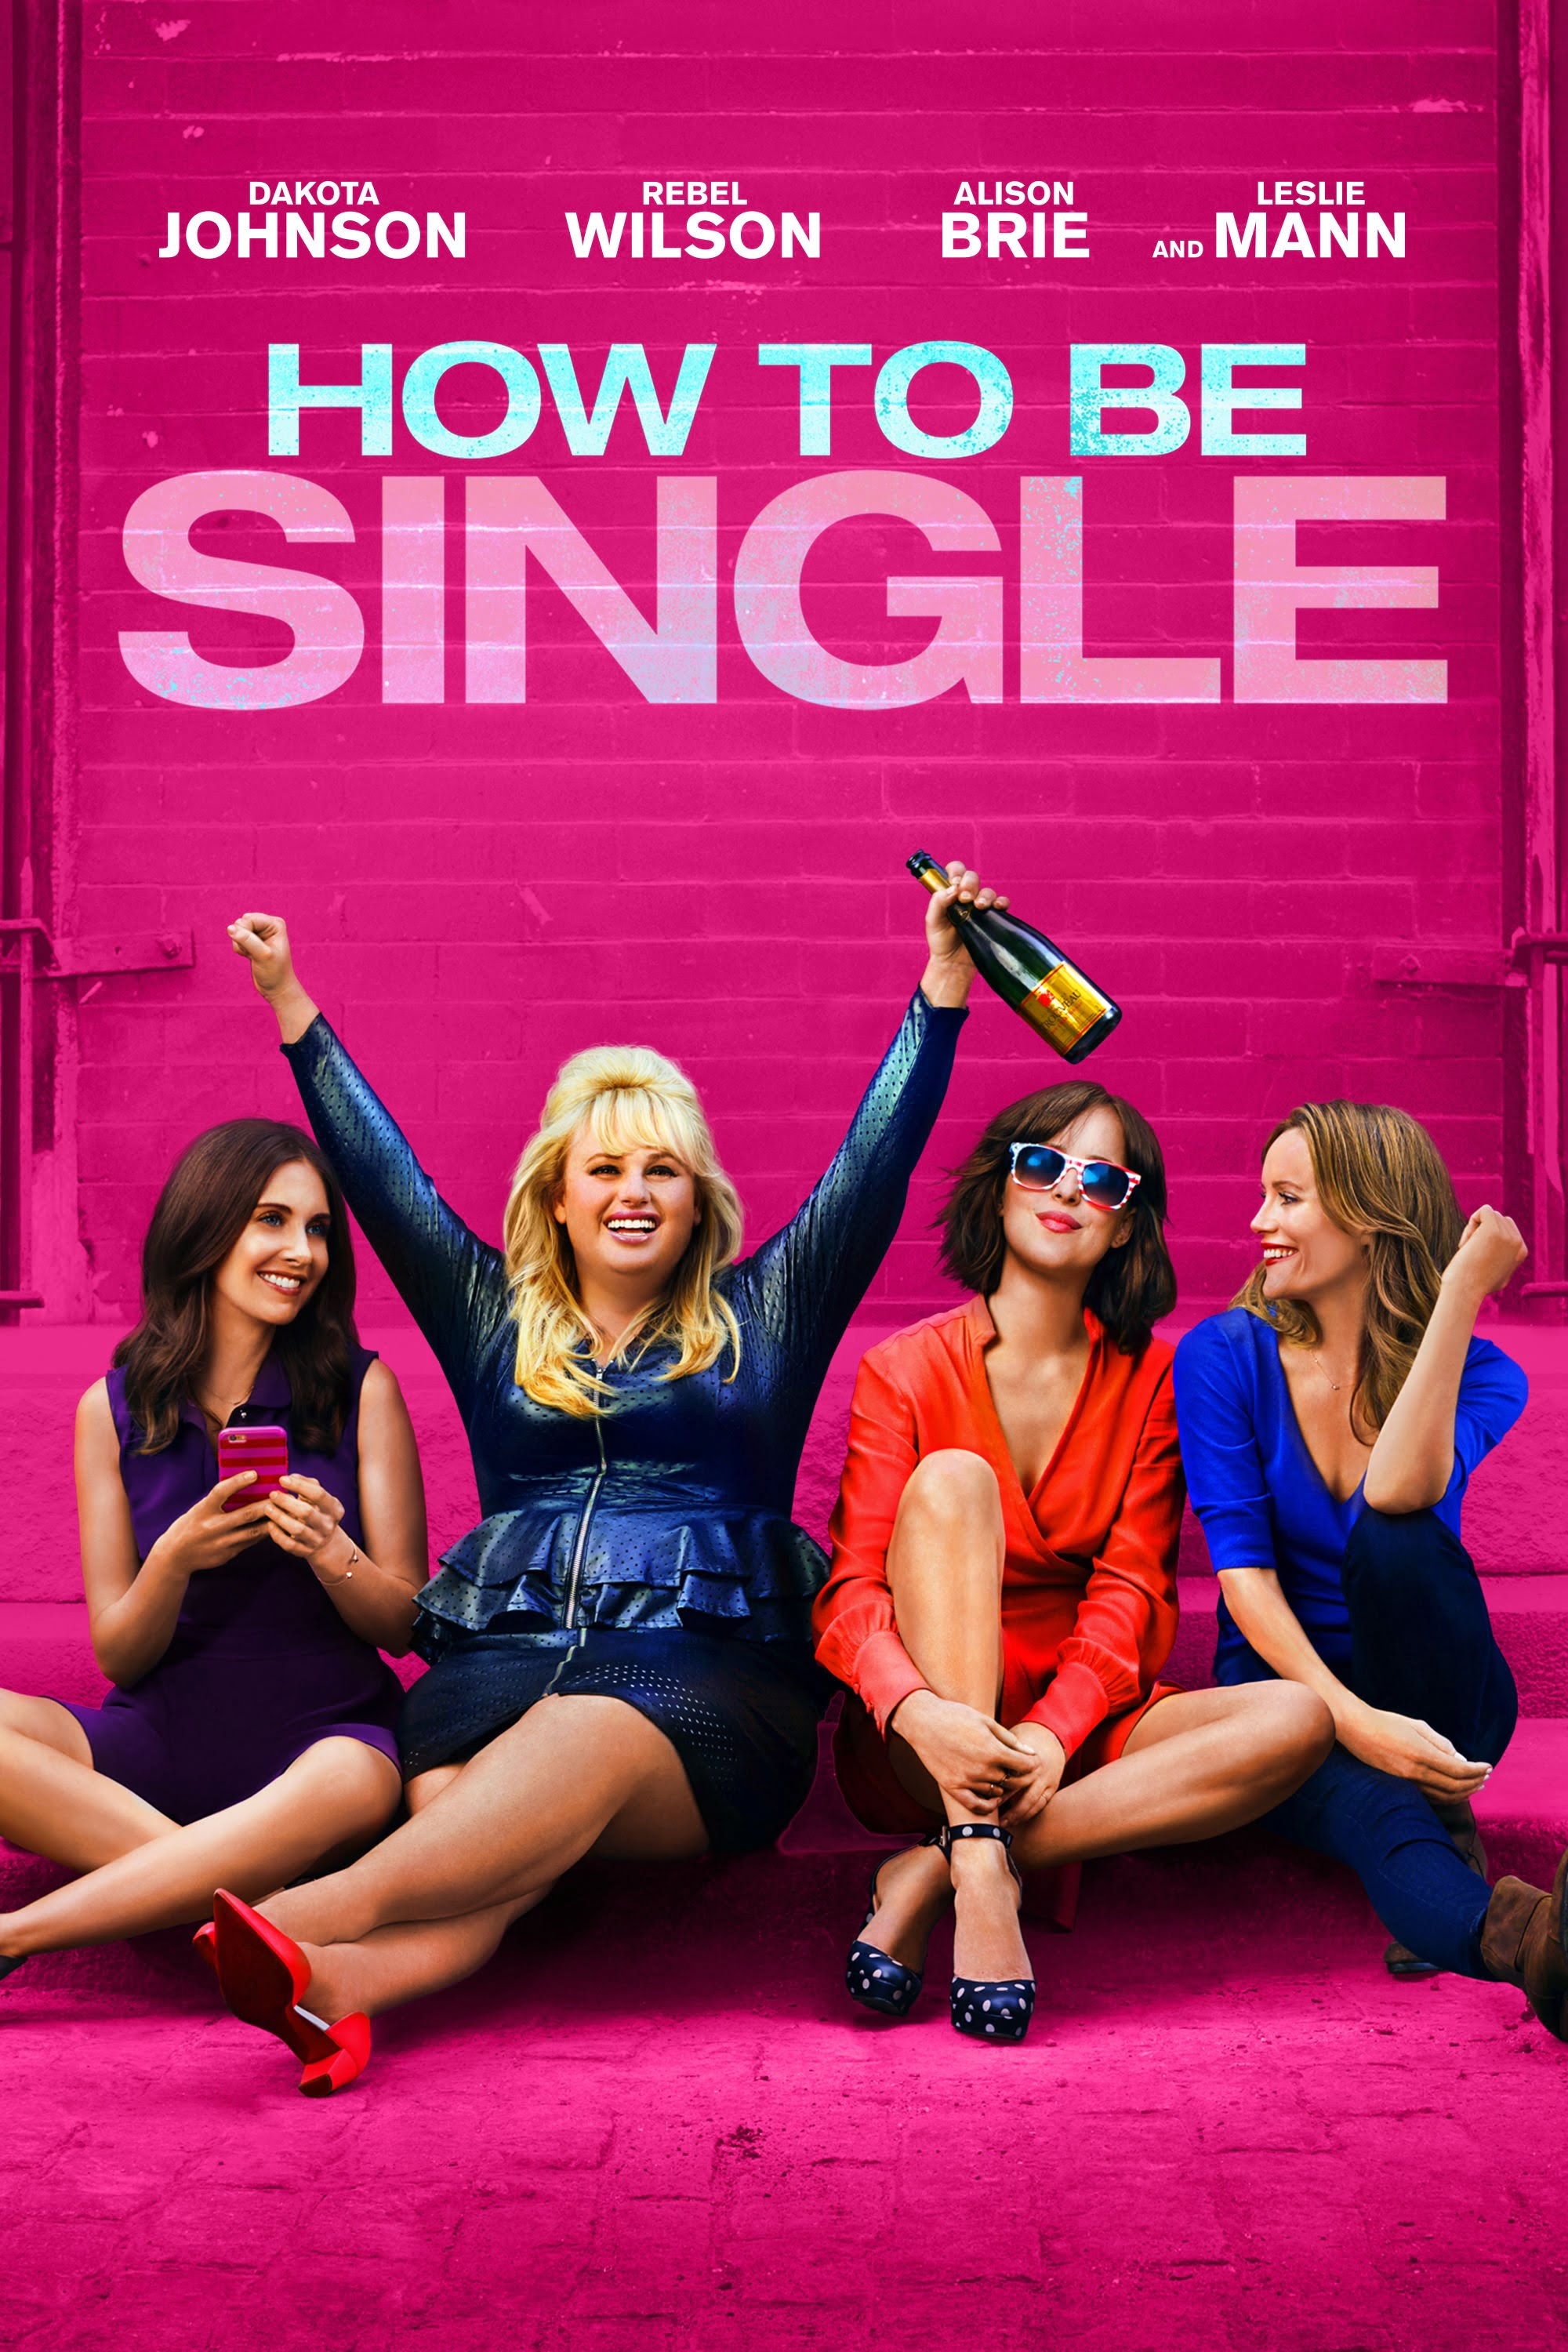 how-to-be-single-filming-locations-dvd-poster